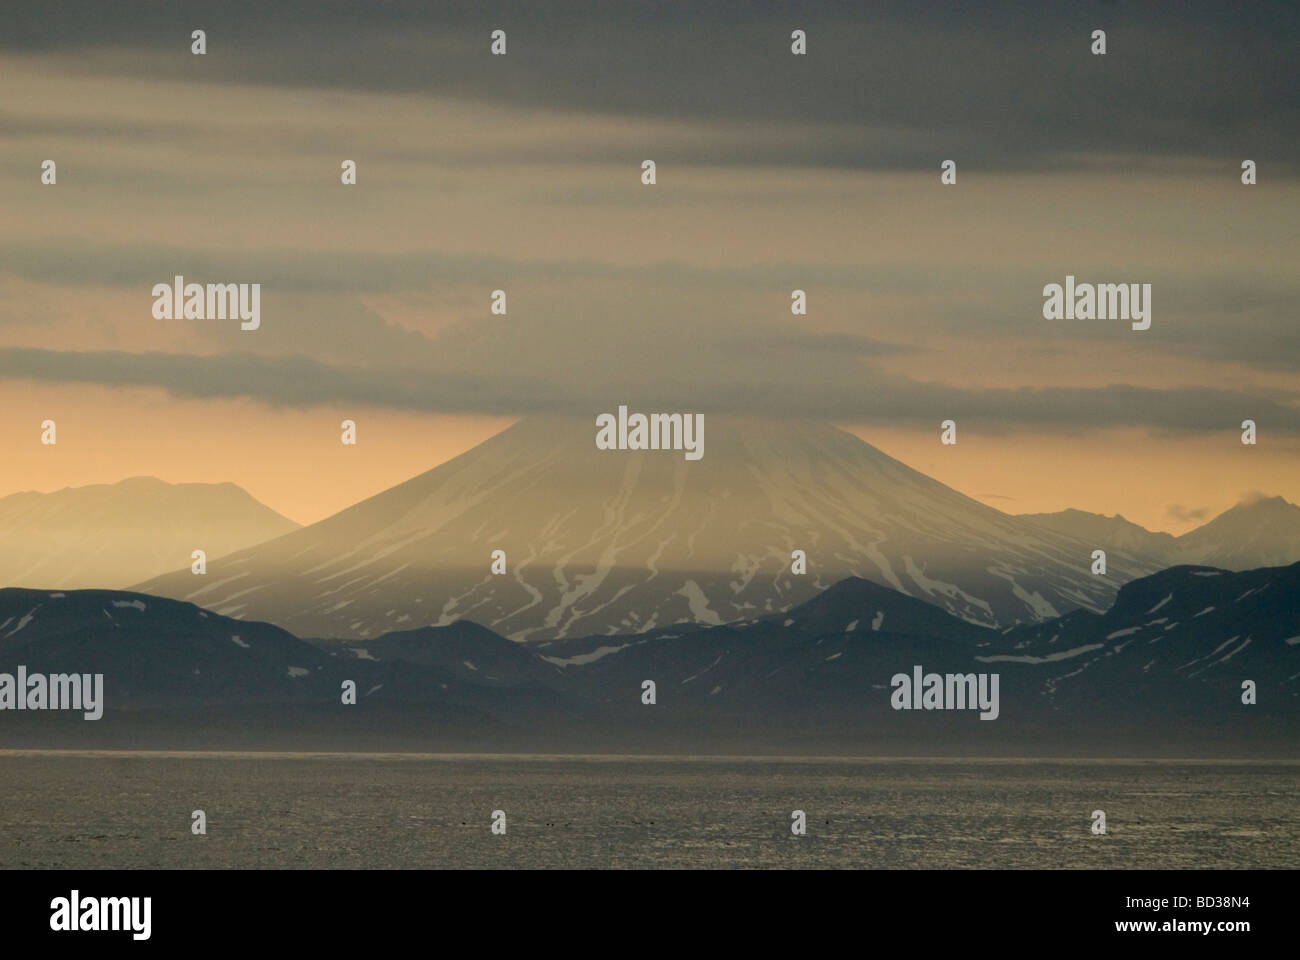 Volcanoes of Kamchatka , Russia - Stock Image